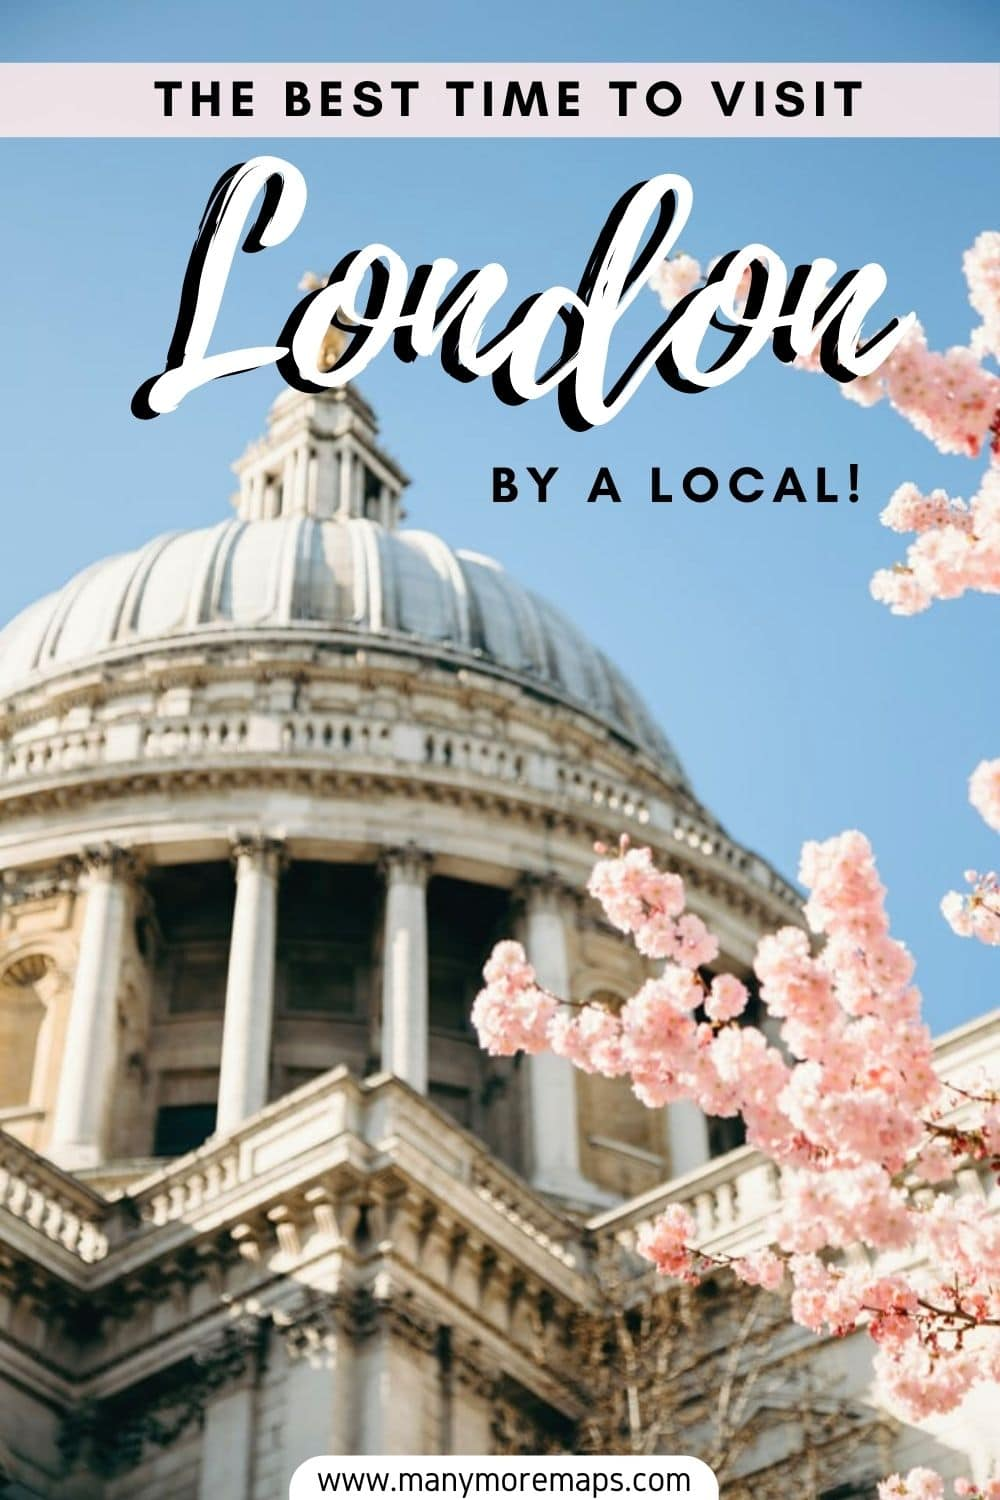 Planning a trip to London and wondering which season is the best in London? Want to know when is the best time to visit London? Then check out this guide to every season in London, which includes London weather, the best things to do in London in each season, and whether or not Christmas is a good time to spend in London. London travel tips, London England life, London travel guide, london in spring, london in winter, london in autumn, london in fall, london in summer, christmas in london